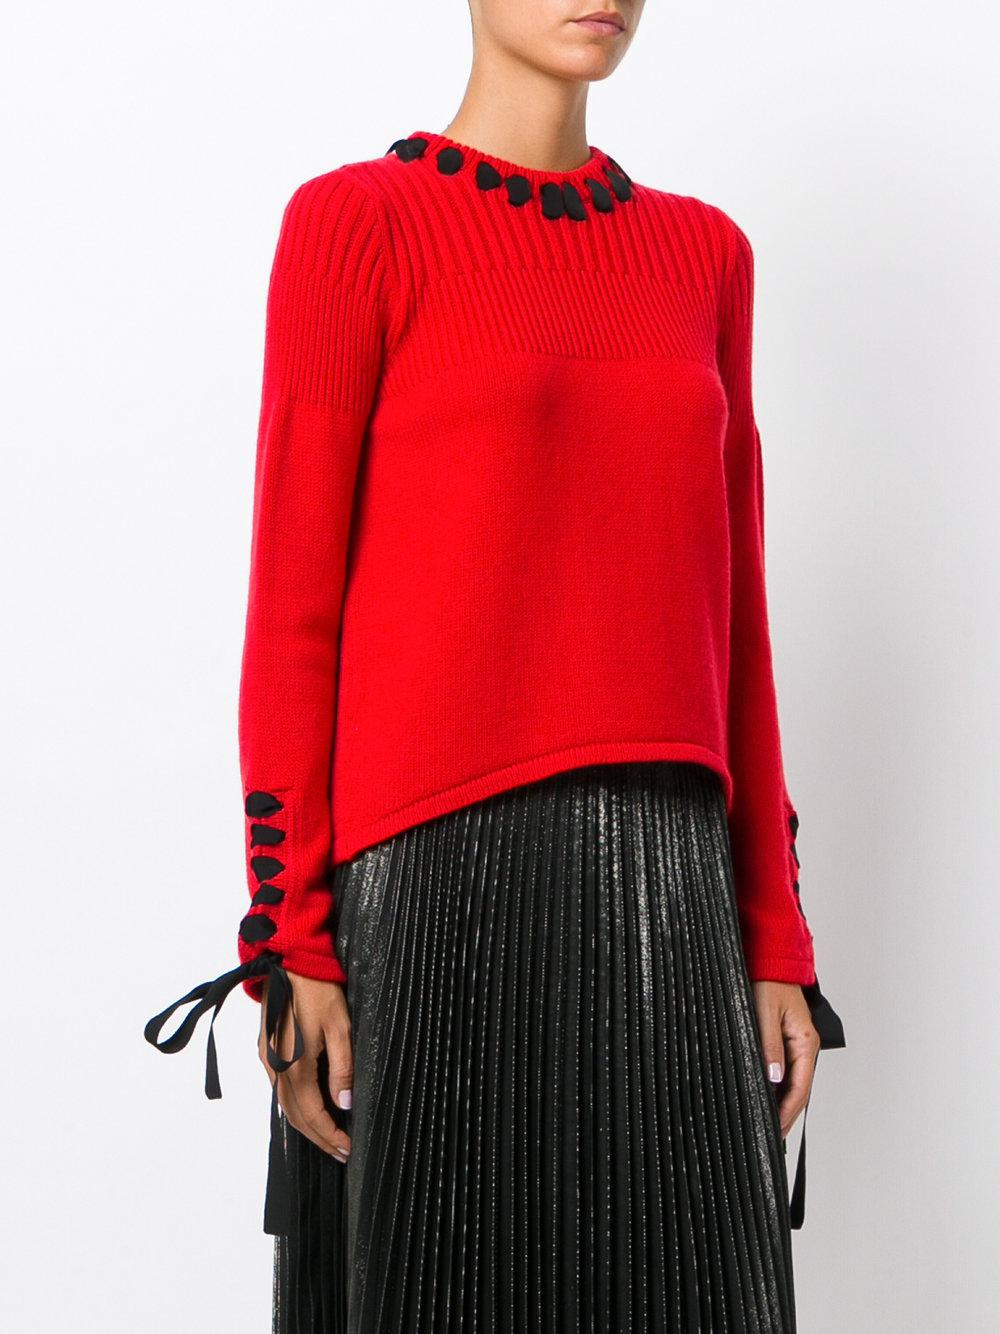 Fendi Lace-up Detailing Sweater in Red | Lyst